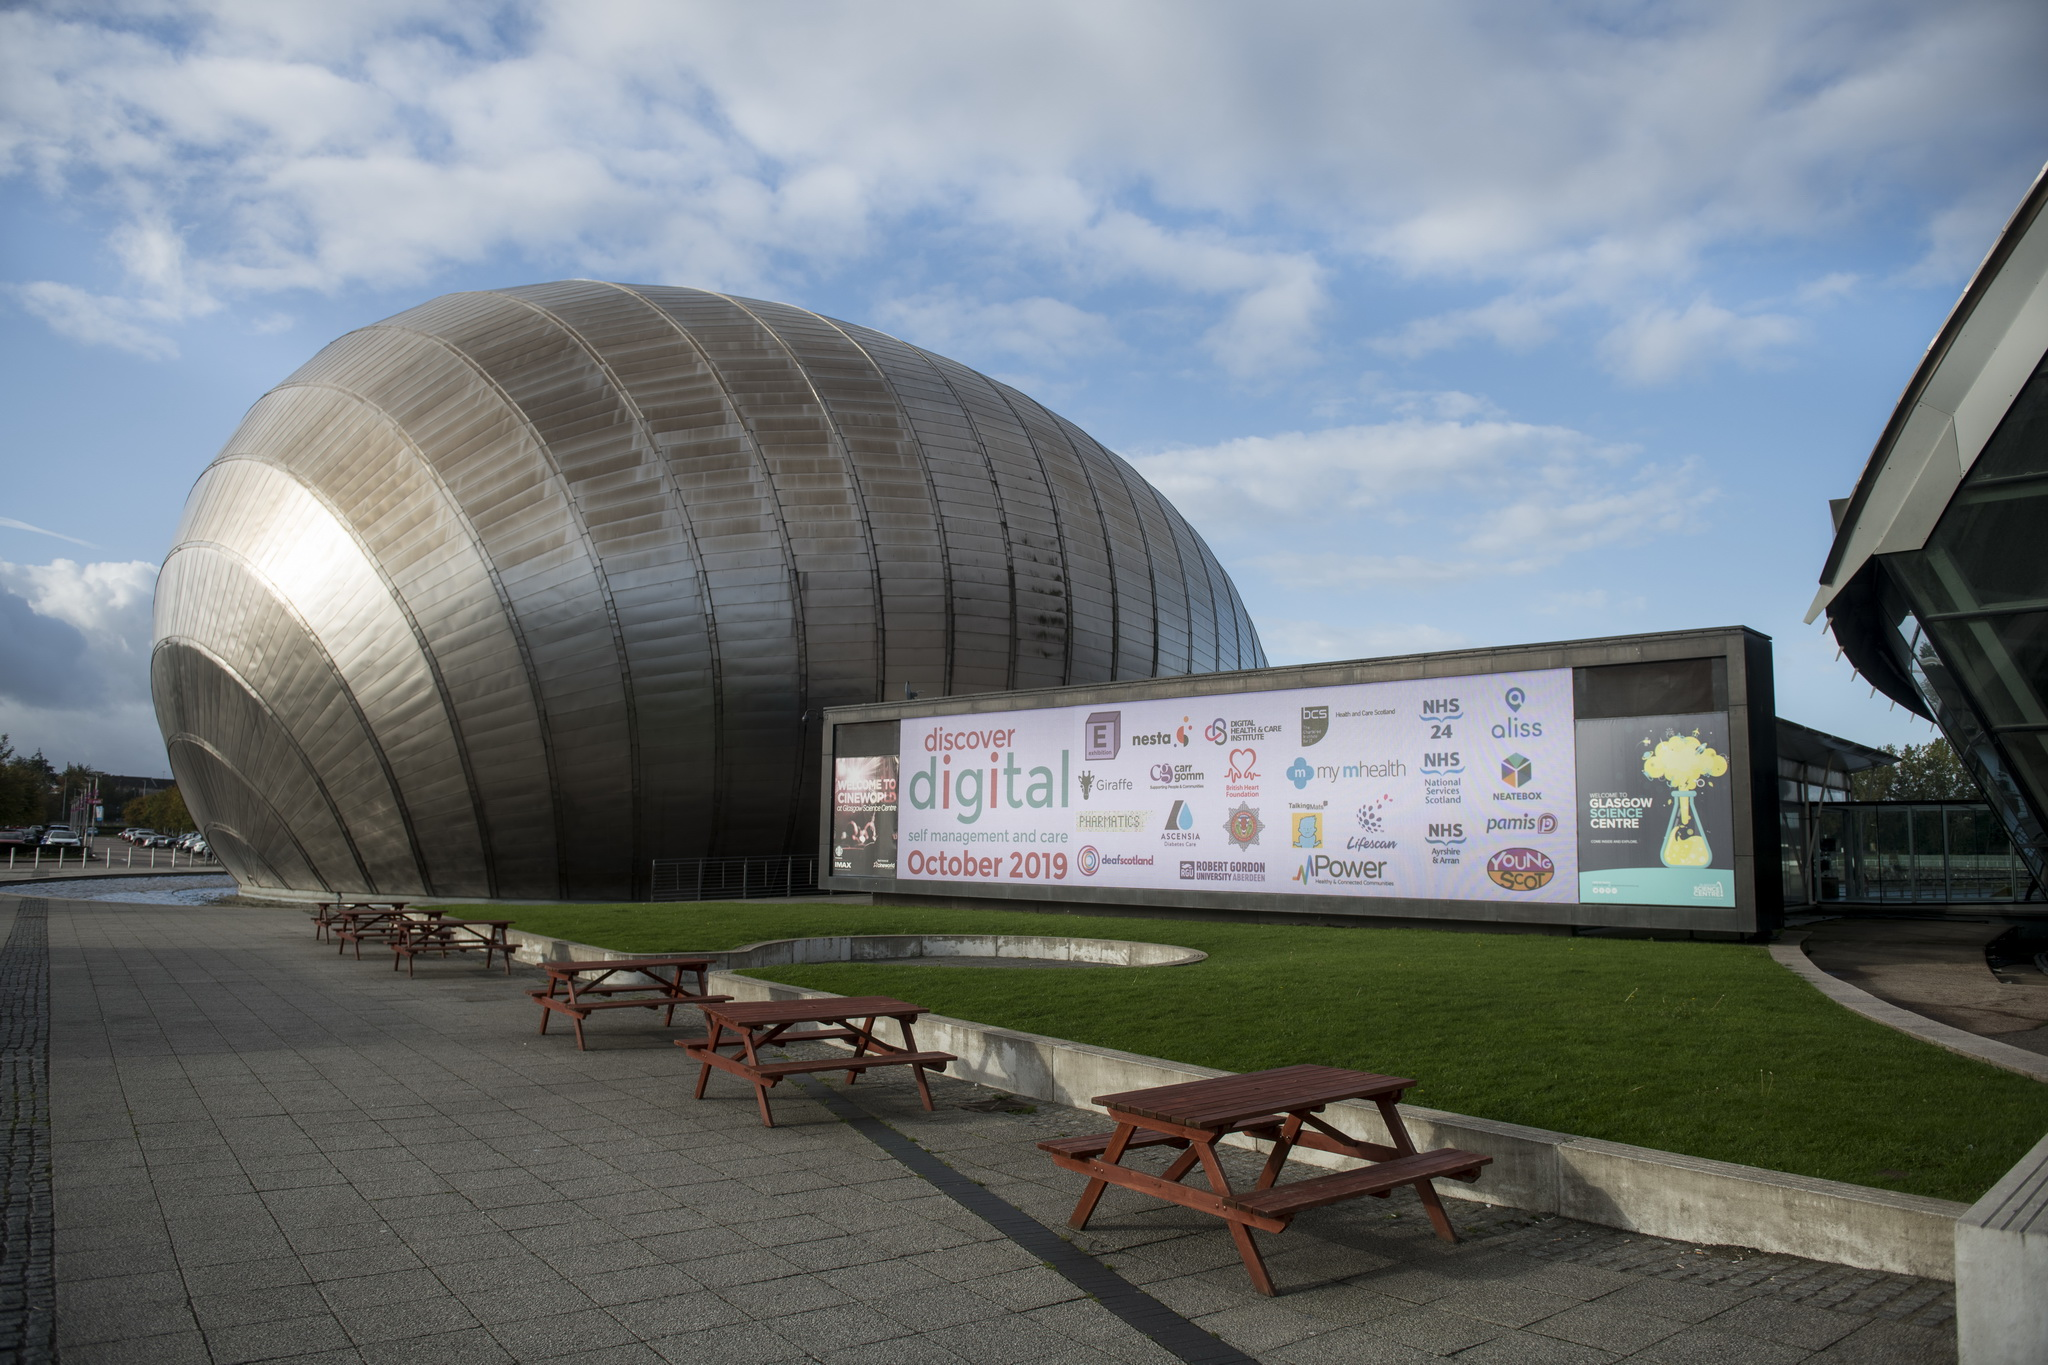 Image of Glagow Science Centre with large screen filled with logos of organisations involved in Discover Digital. Blue sky and green grass fame the picture.